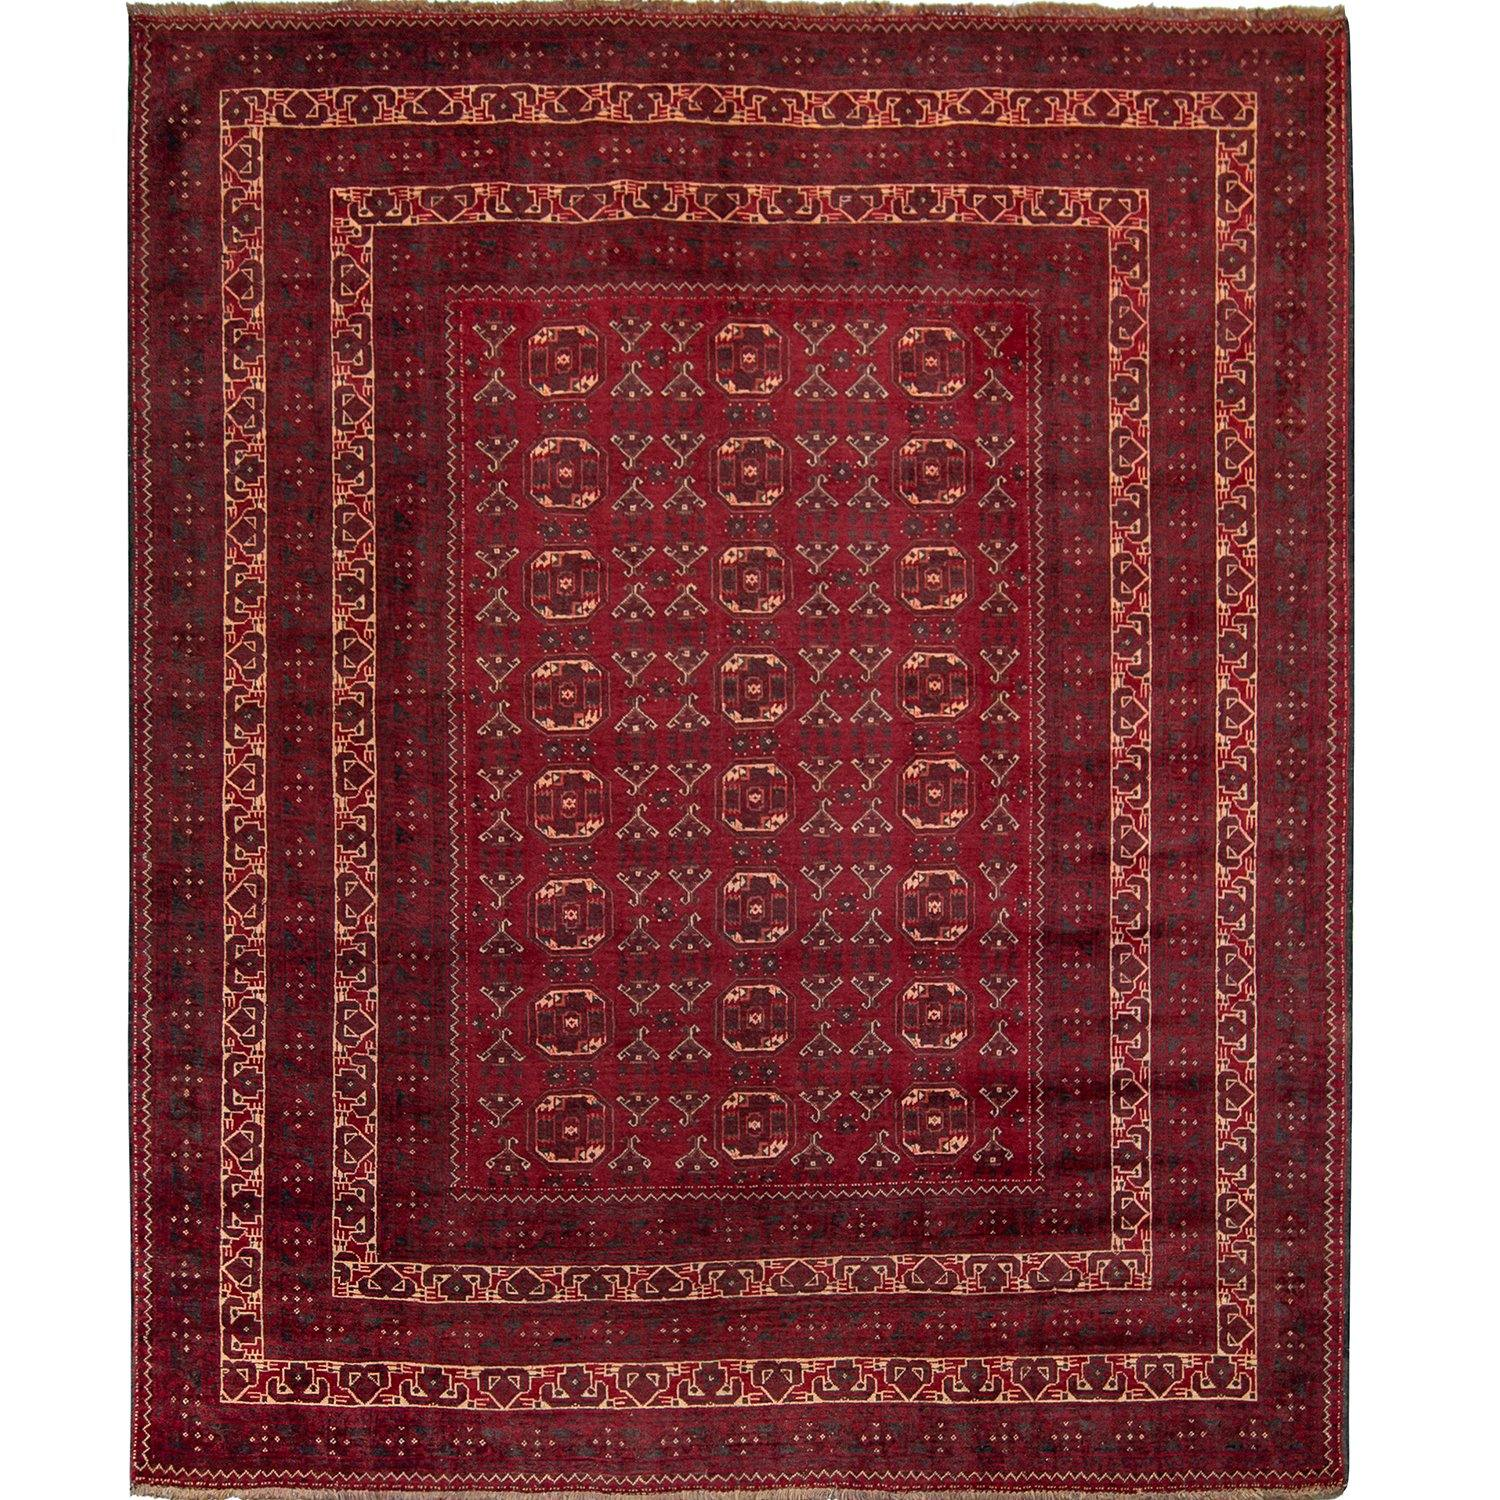 Fine Hand-knotted Wool Tribal Turkmen Rug 211cm x 272cm Persian-Rug | House-of-Haghi | NewMarket | Auckland | NZ | Handmade Persian Rugs | Hand Knotted Persian Rugs